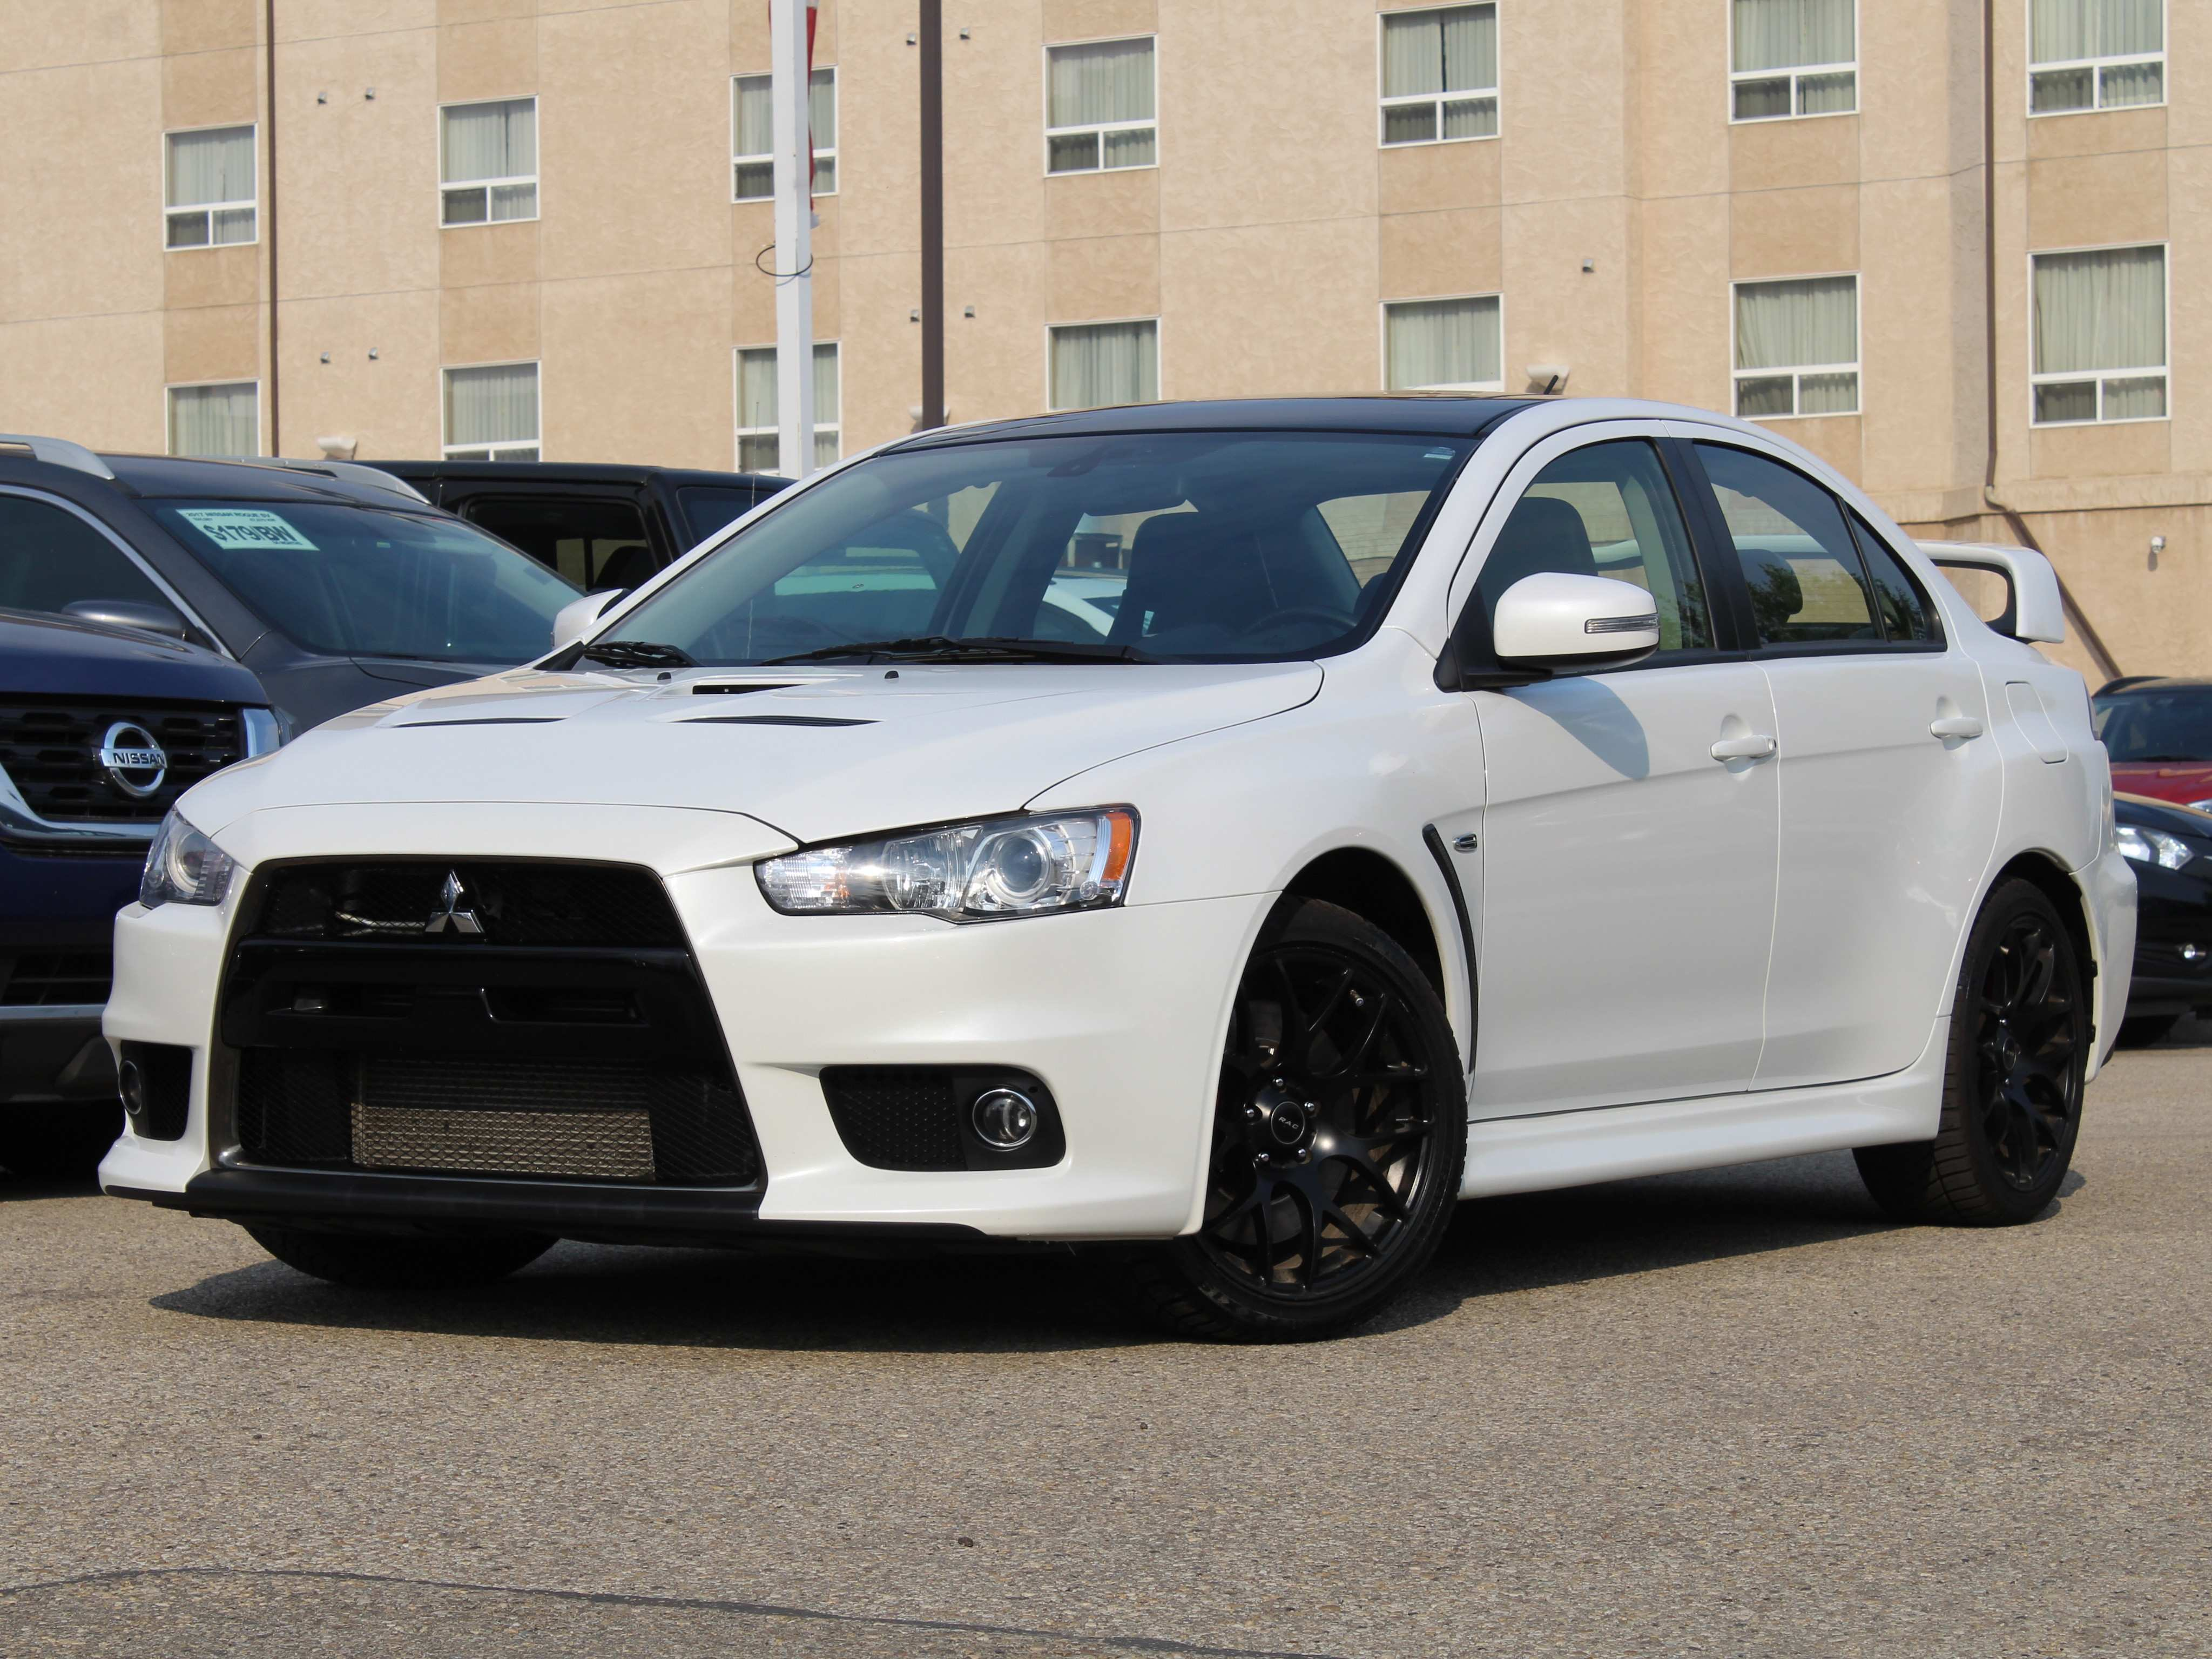 42 All New 2019 Mitsubishi Lancer EVO XI Specs And Review